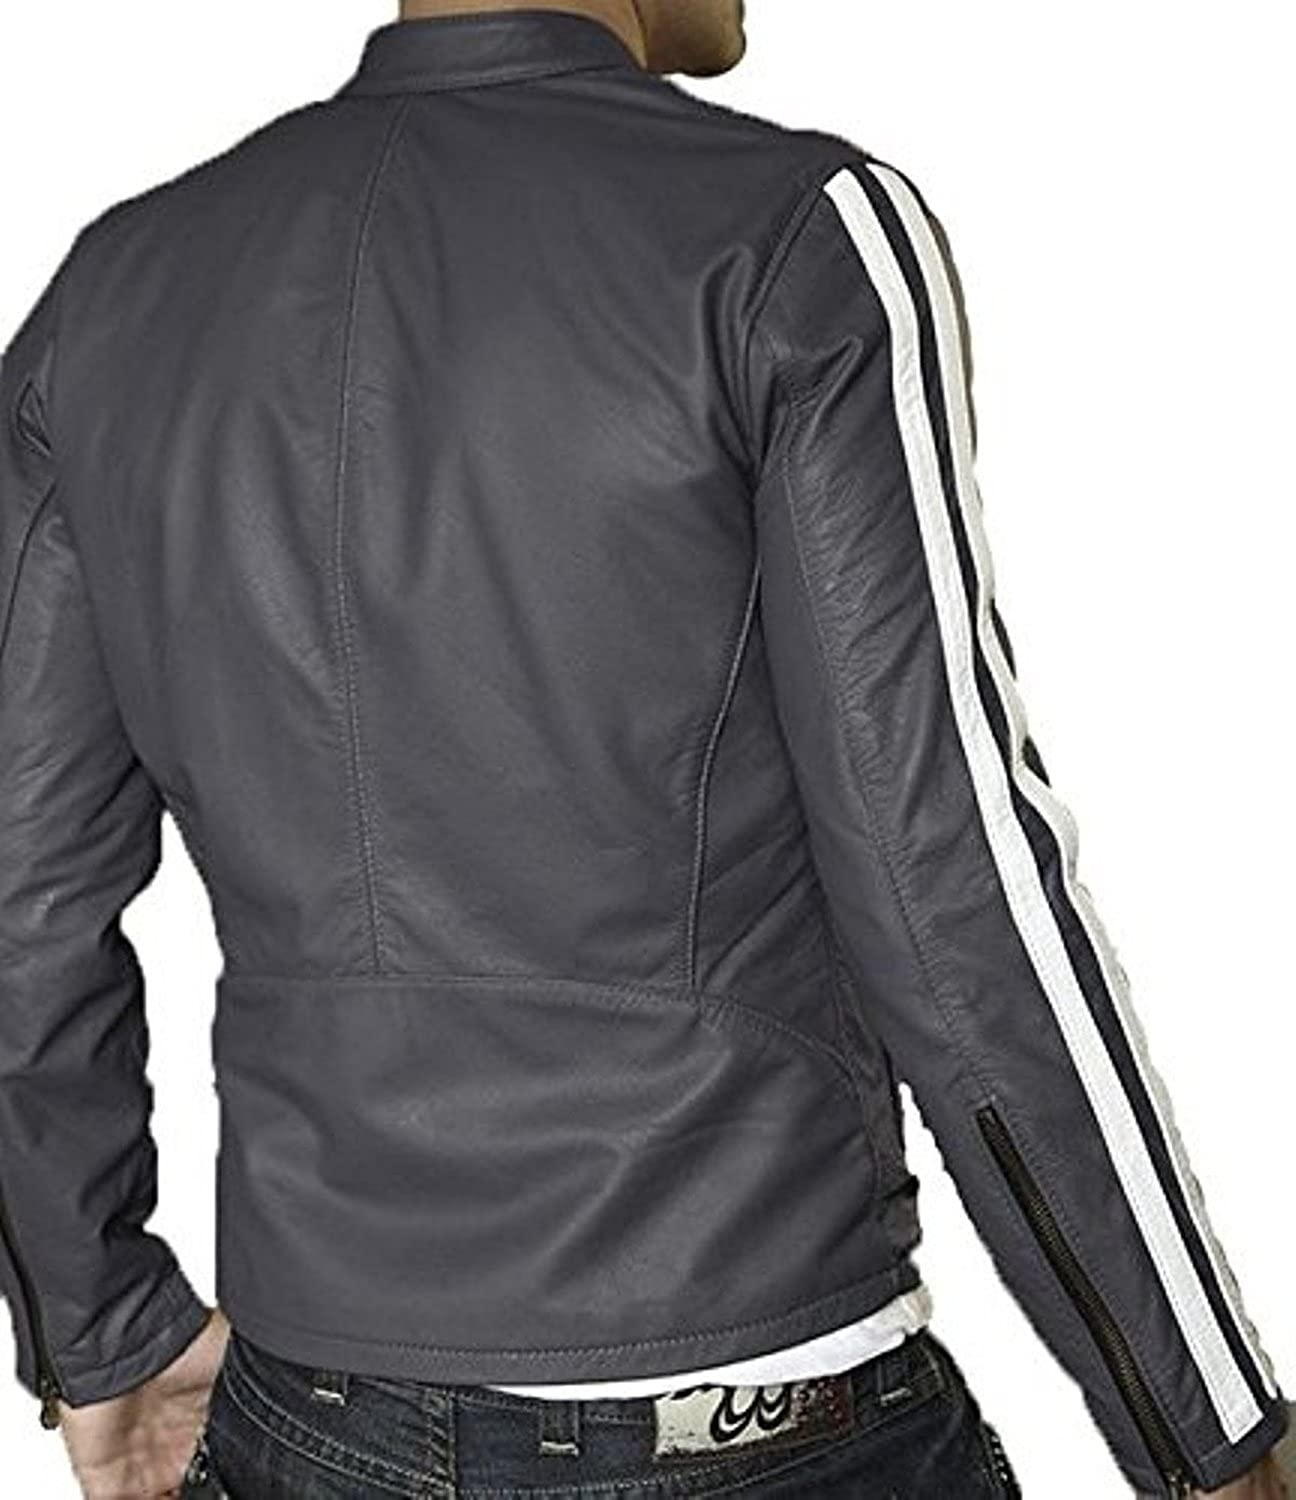 New Men Quilted Leather Jacket Soft Lambskin Biker Bomber T827